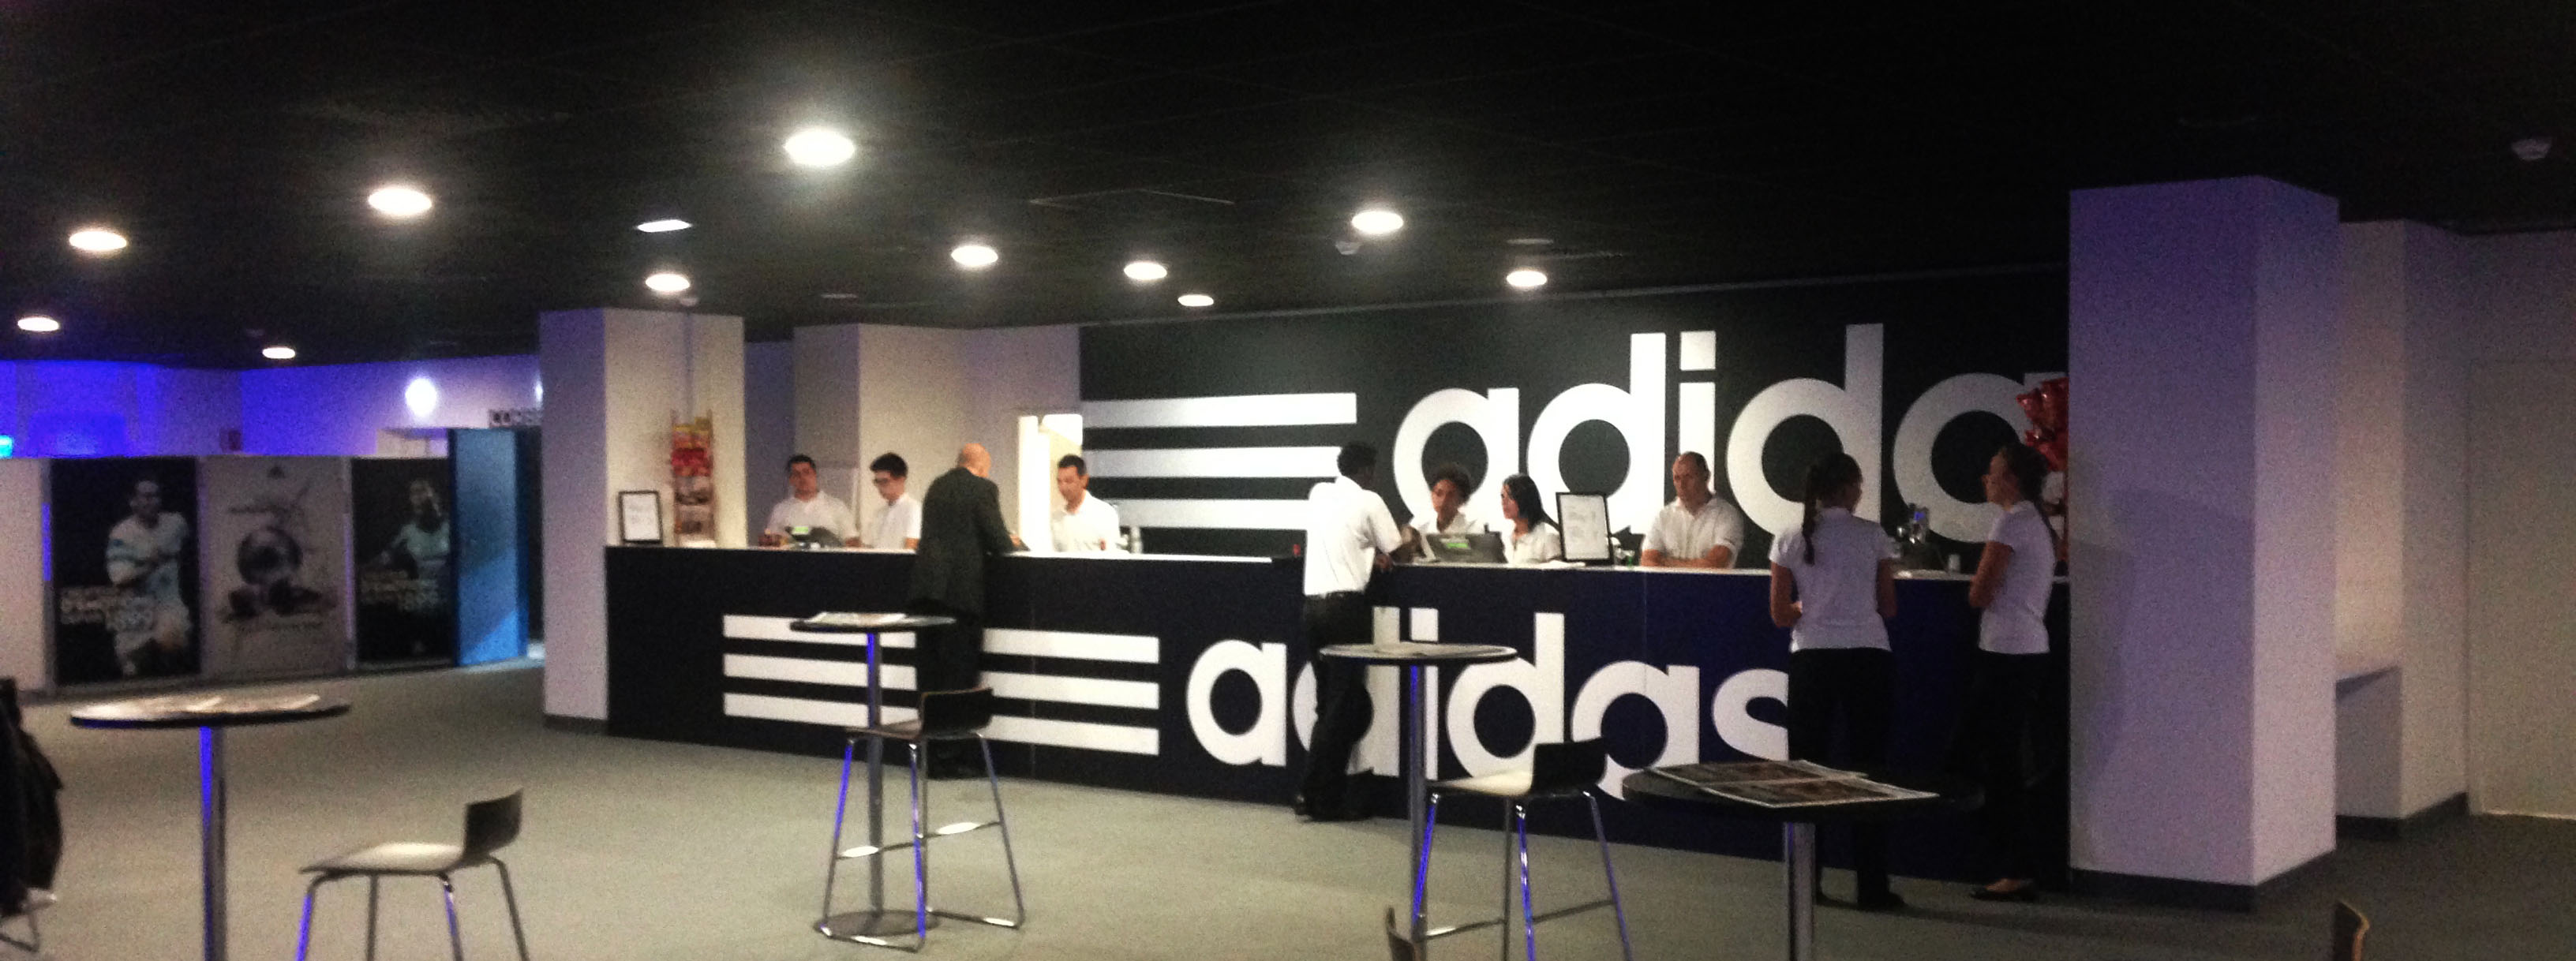 Salon Club Adidas OM